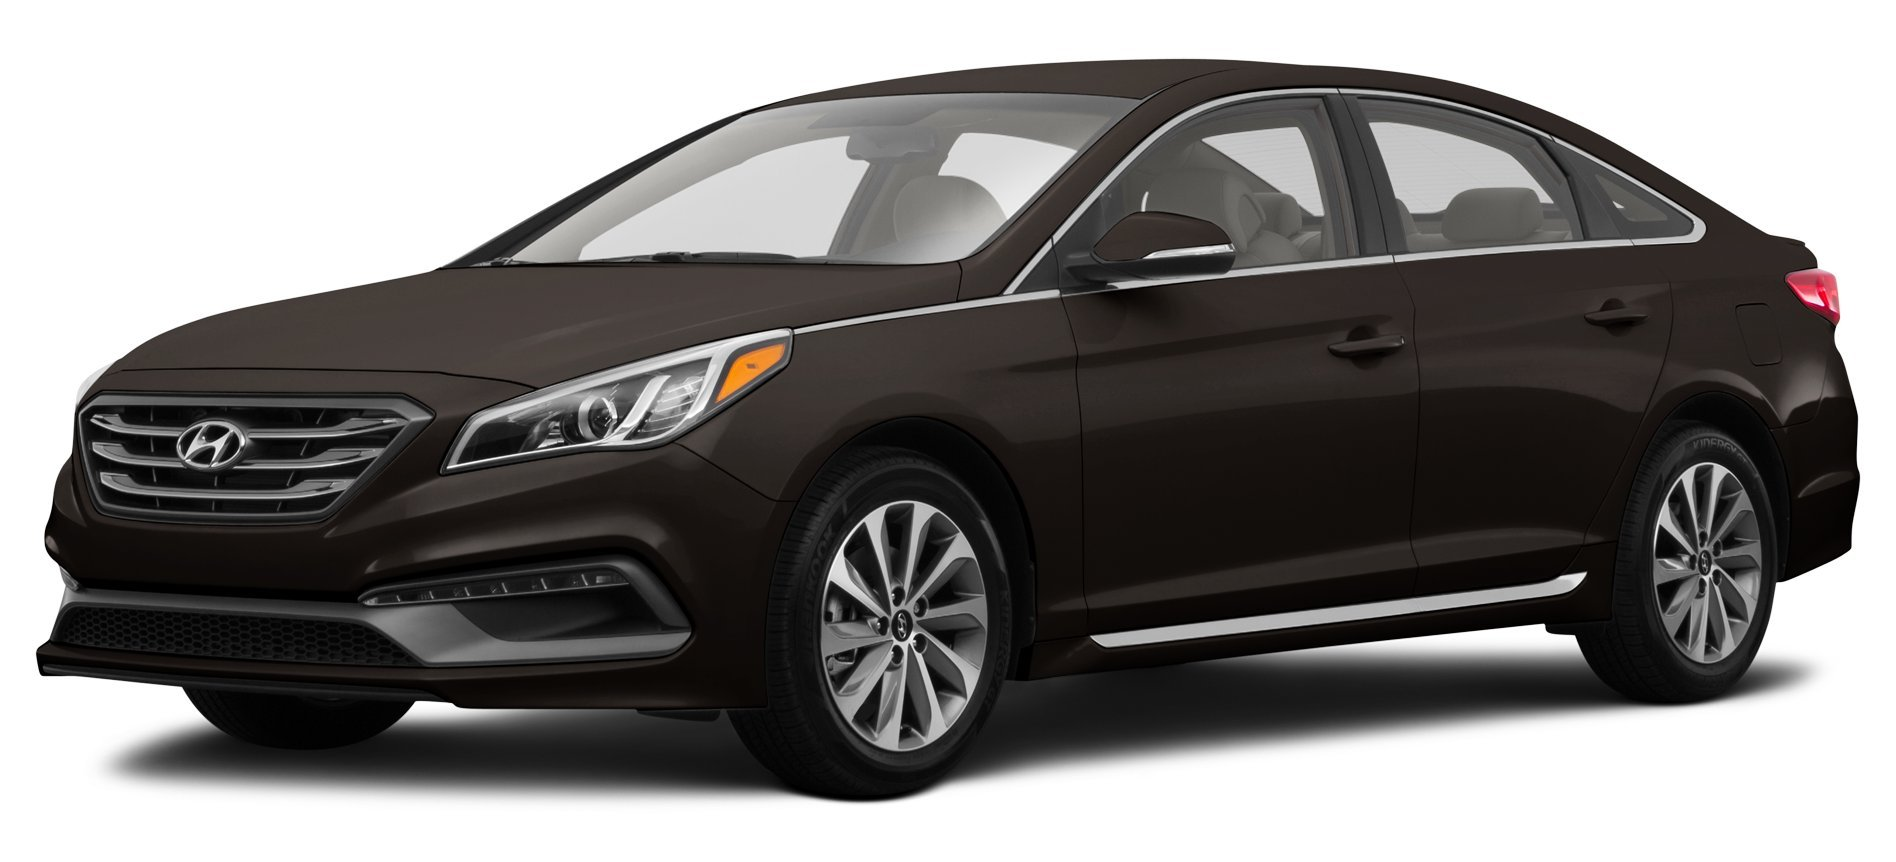 2016 hyundai sonata reviews images and specs vehicles. Black Bedroom Furniture Sets. Home Design Ideas